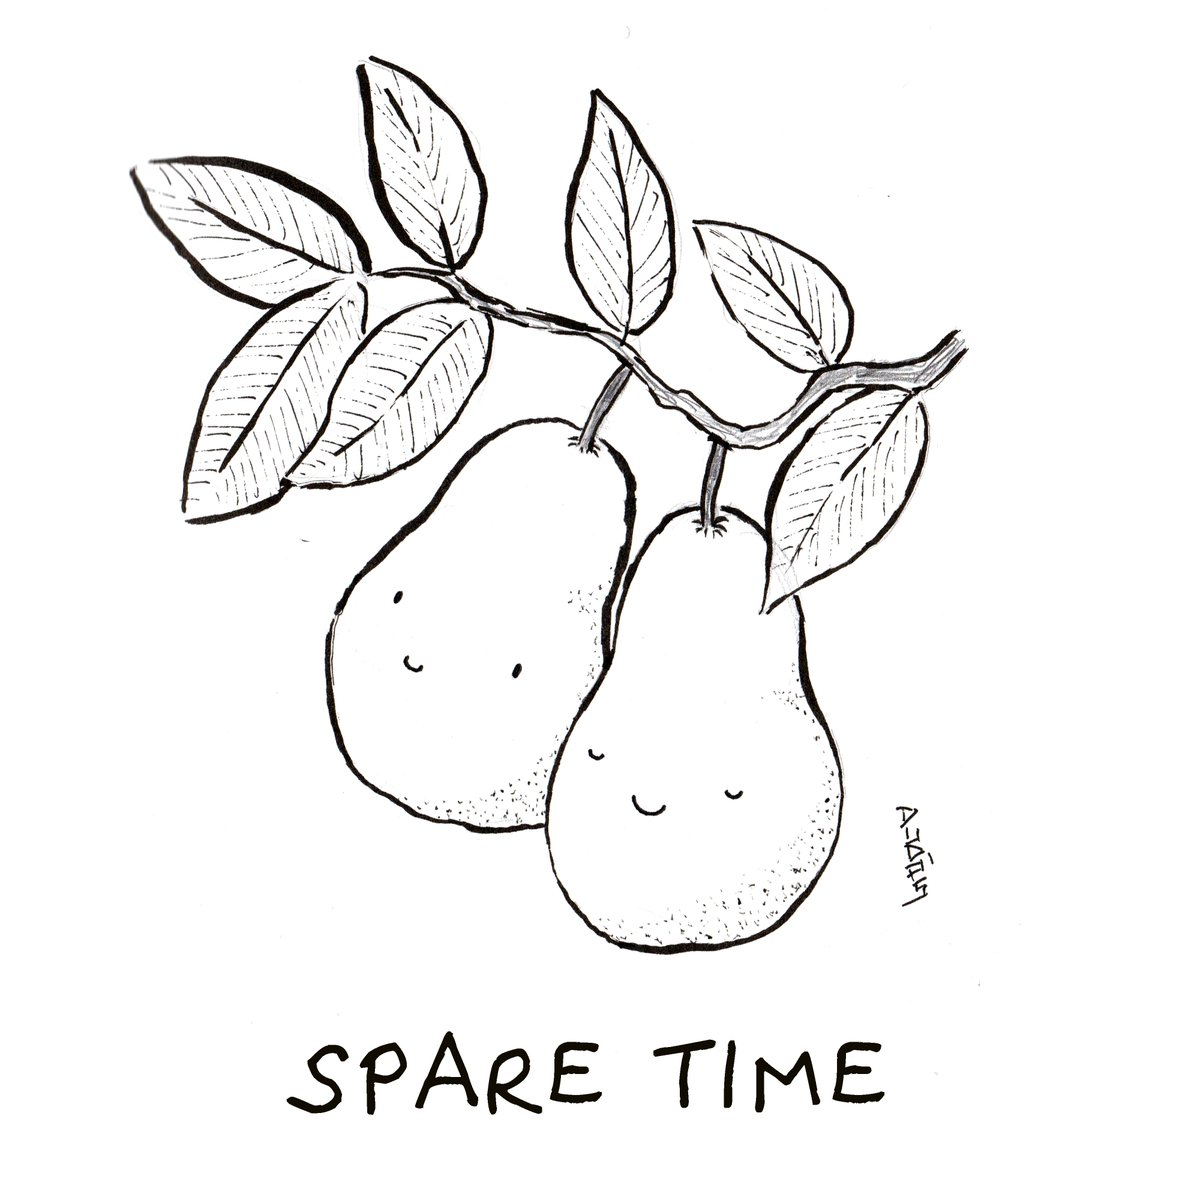 dudolf on twitter daily drawing 5 spare time s t co HTML Class Diagram thedudolf blogspot 2018 06 spare time html spref tw pear pears speartime mood summer cute funny drawing ink graphite